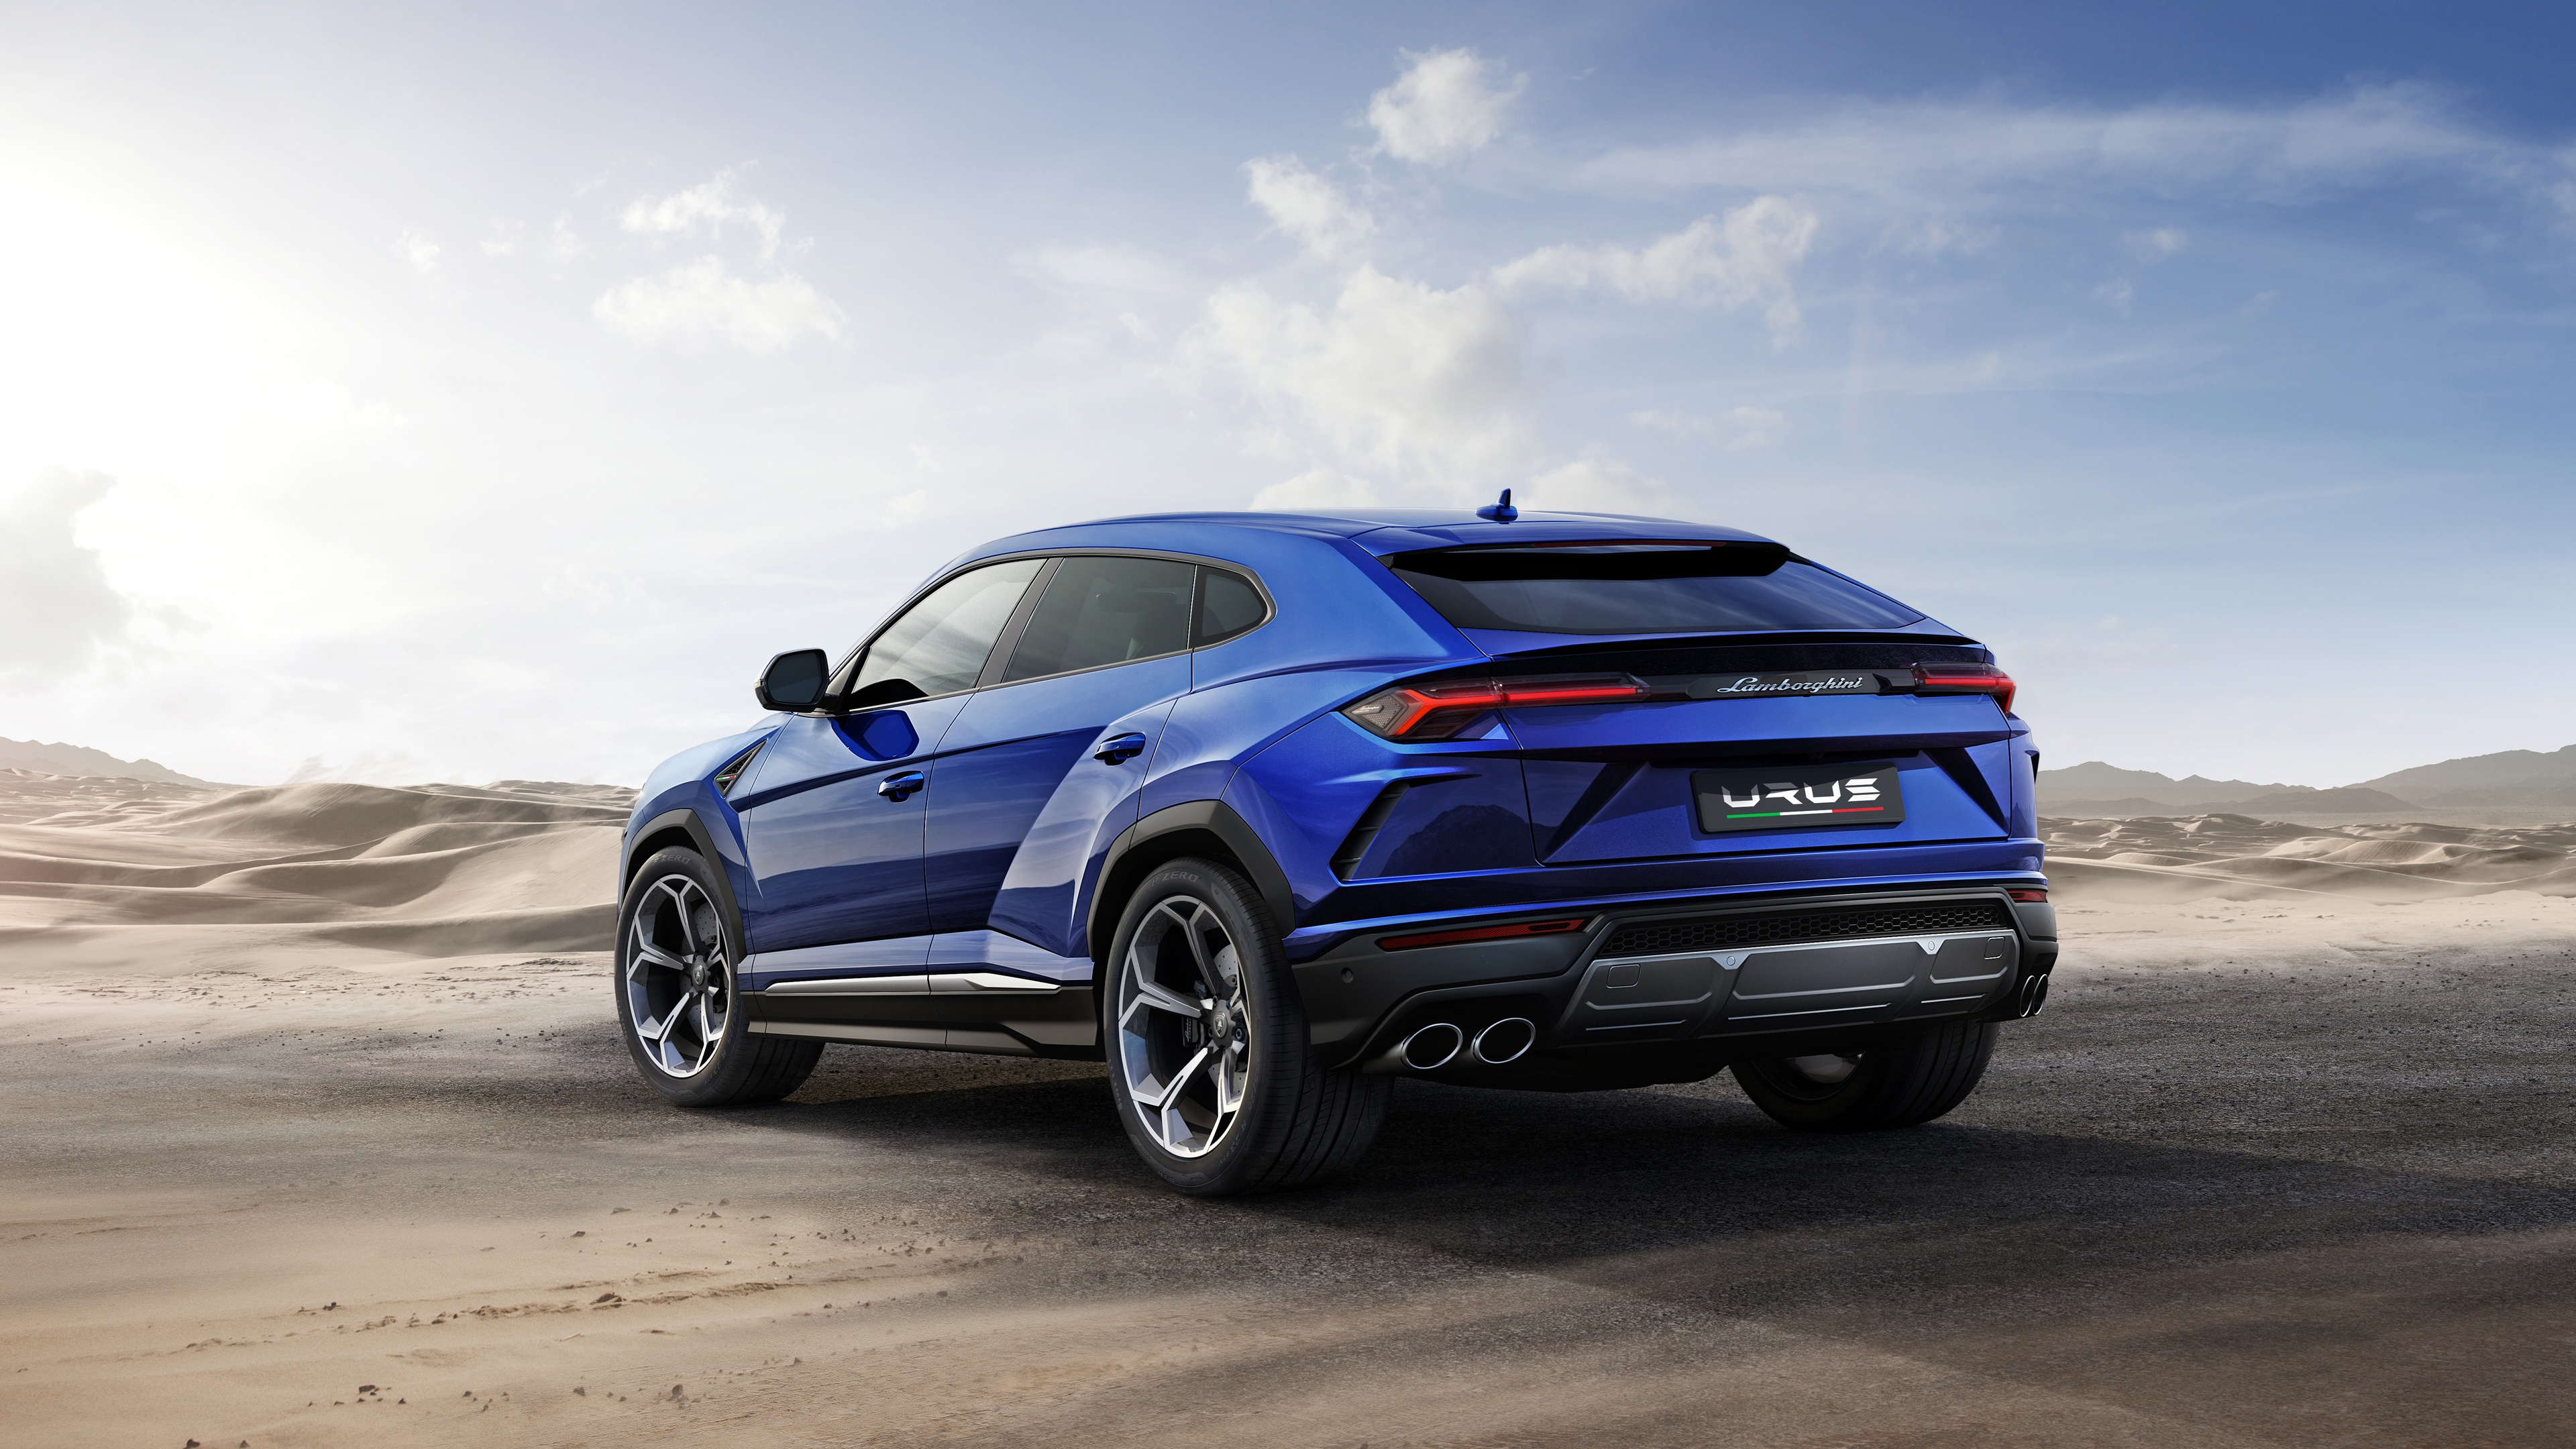 Lamborghini Urus Blue Color 4k, HD Cars, 4k Wallpapers